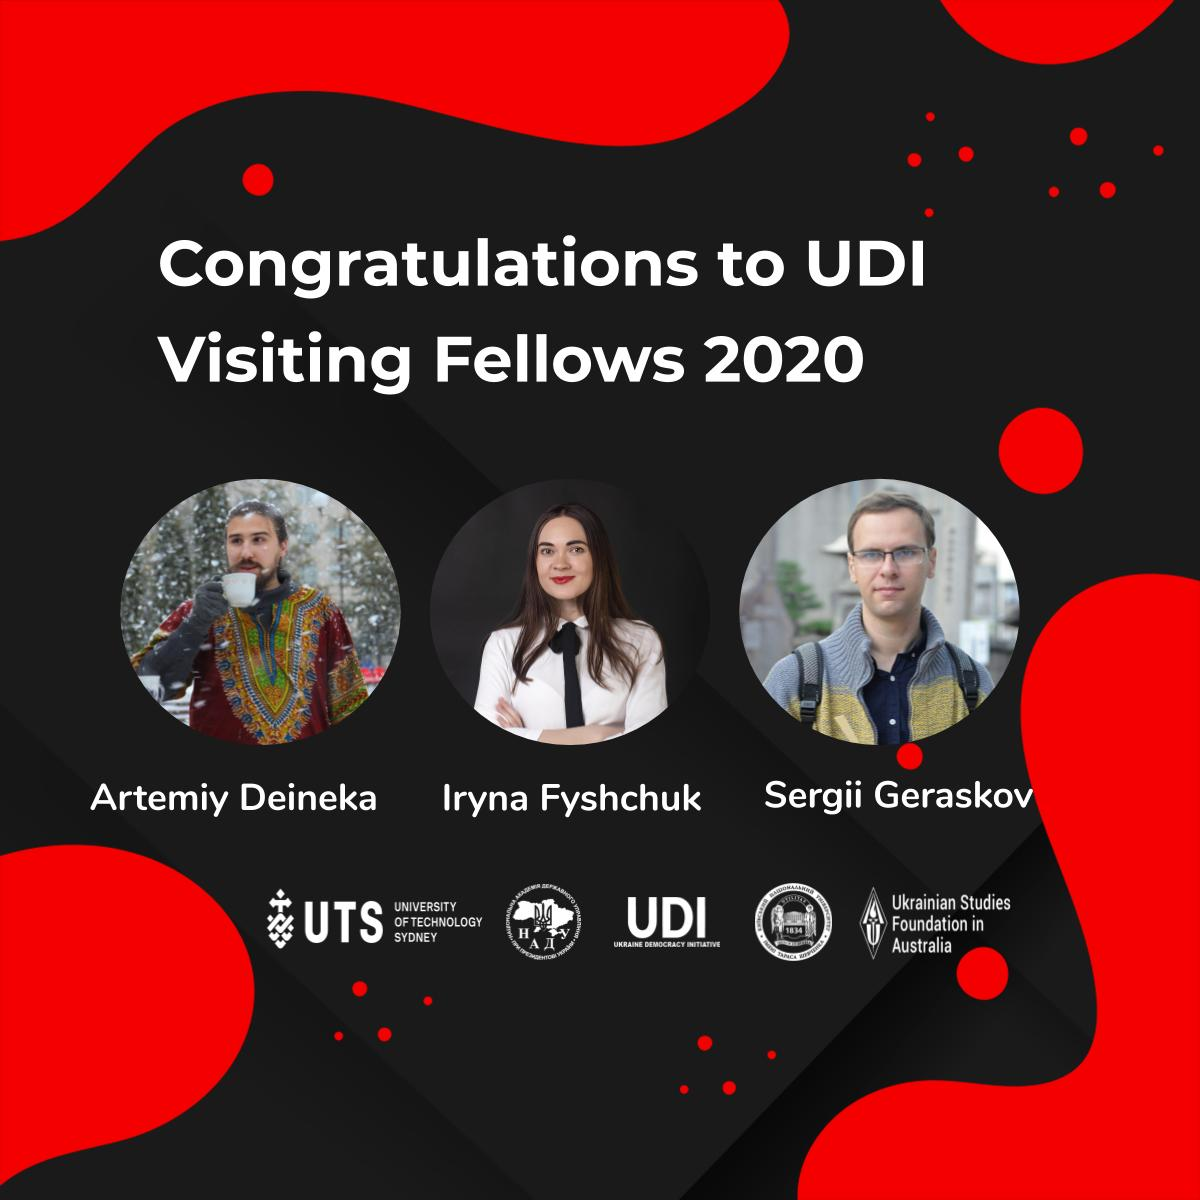 NEWS | CONGRATULATIONS TO UDI VISITING FELLOWS 2020